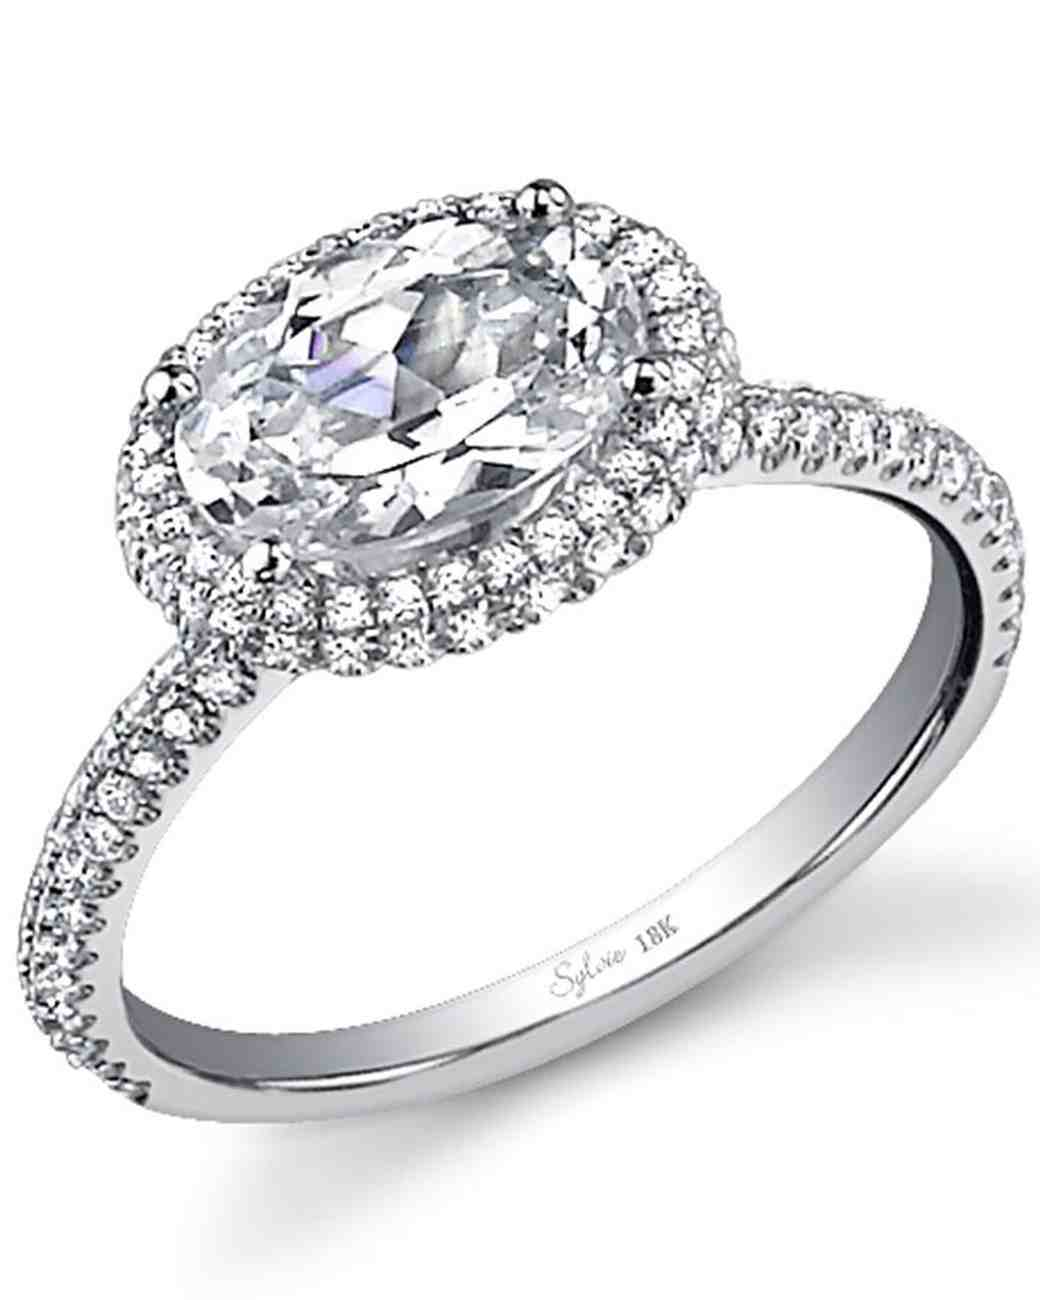 East West Oval Diamond Engagement Rings